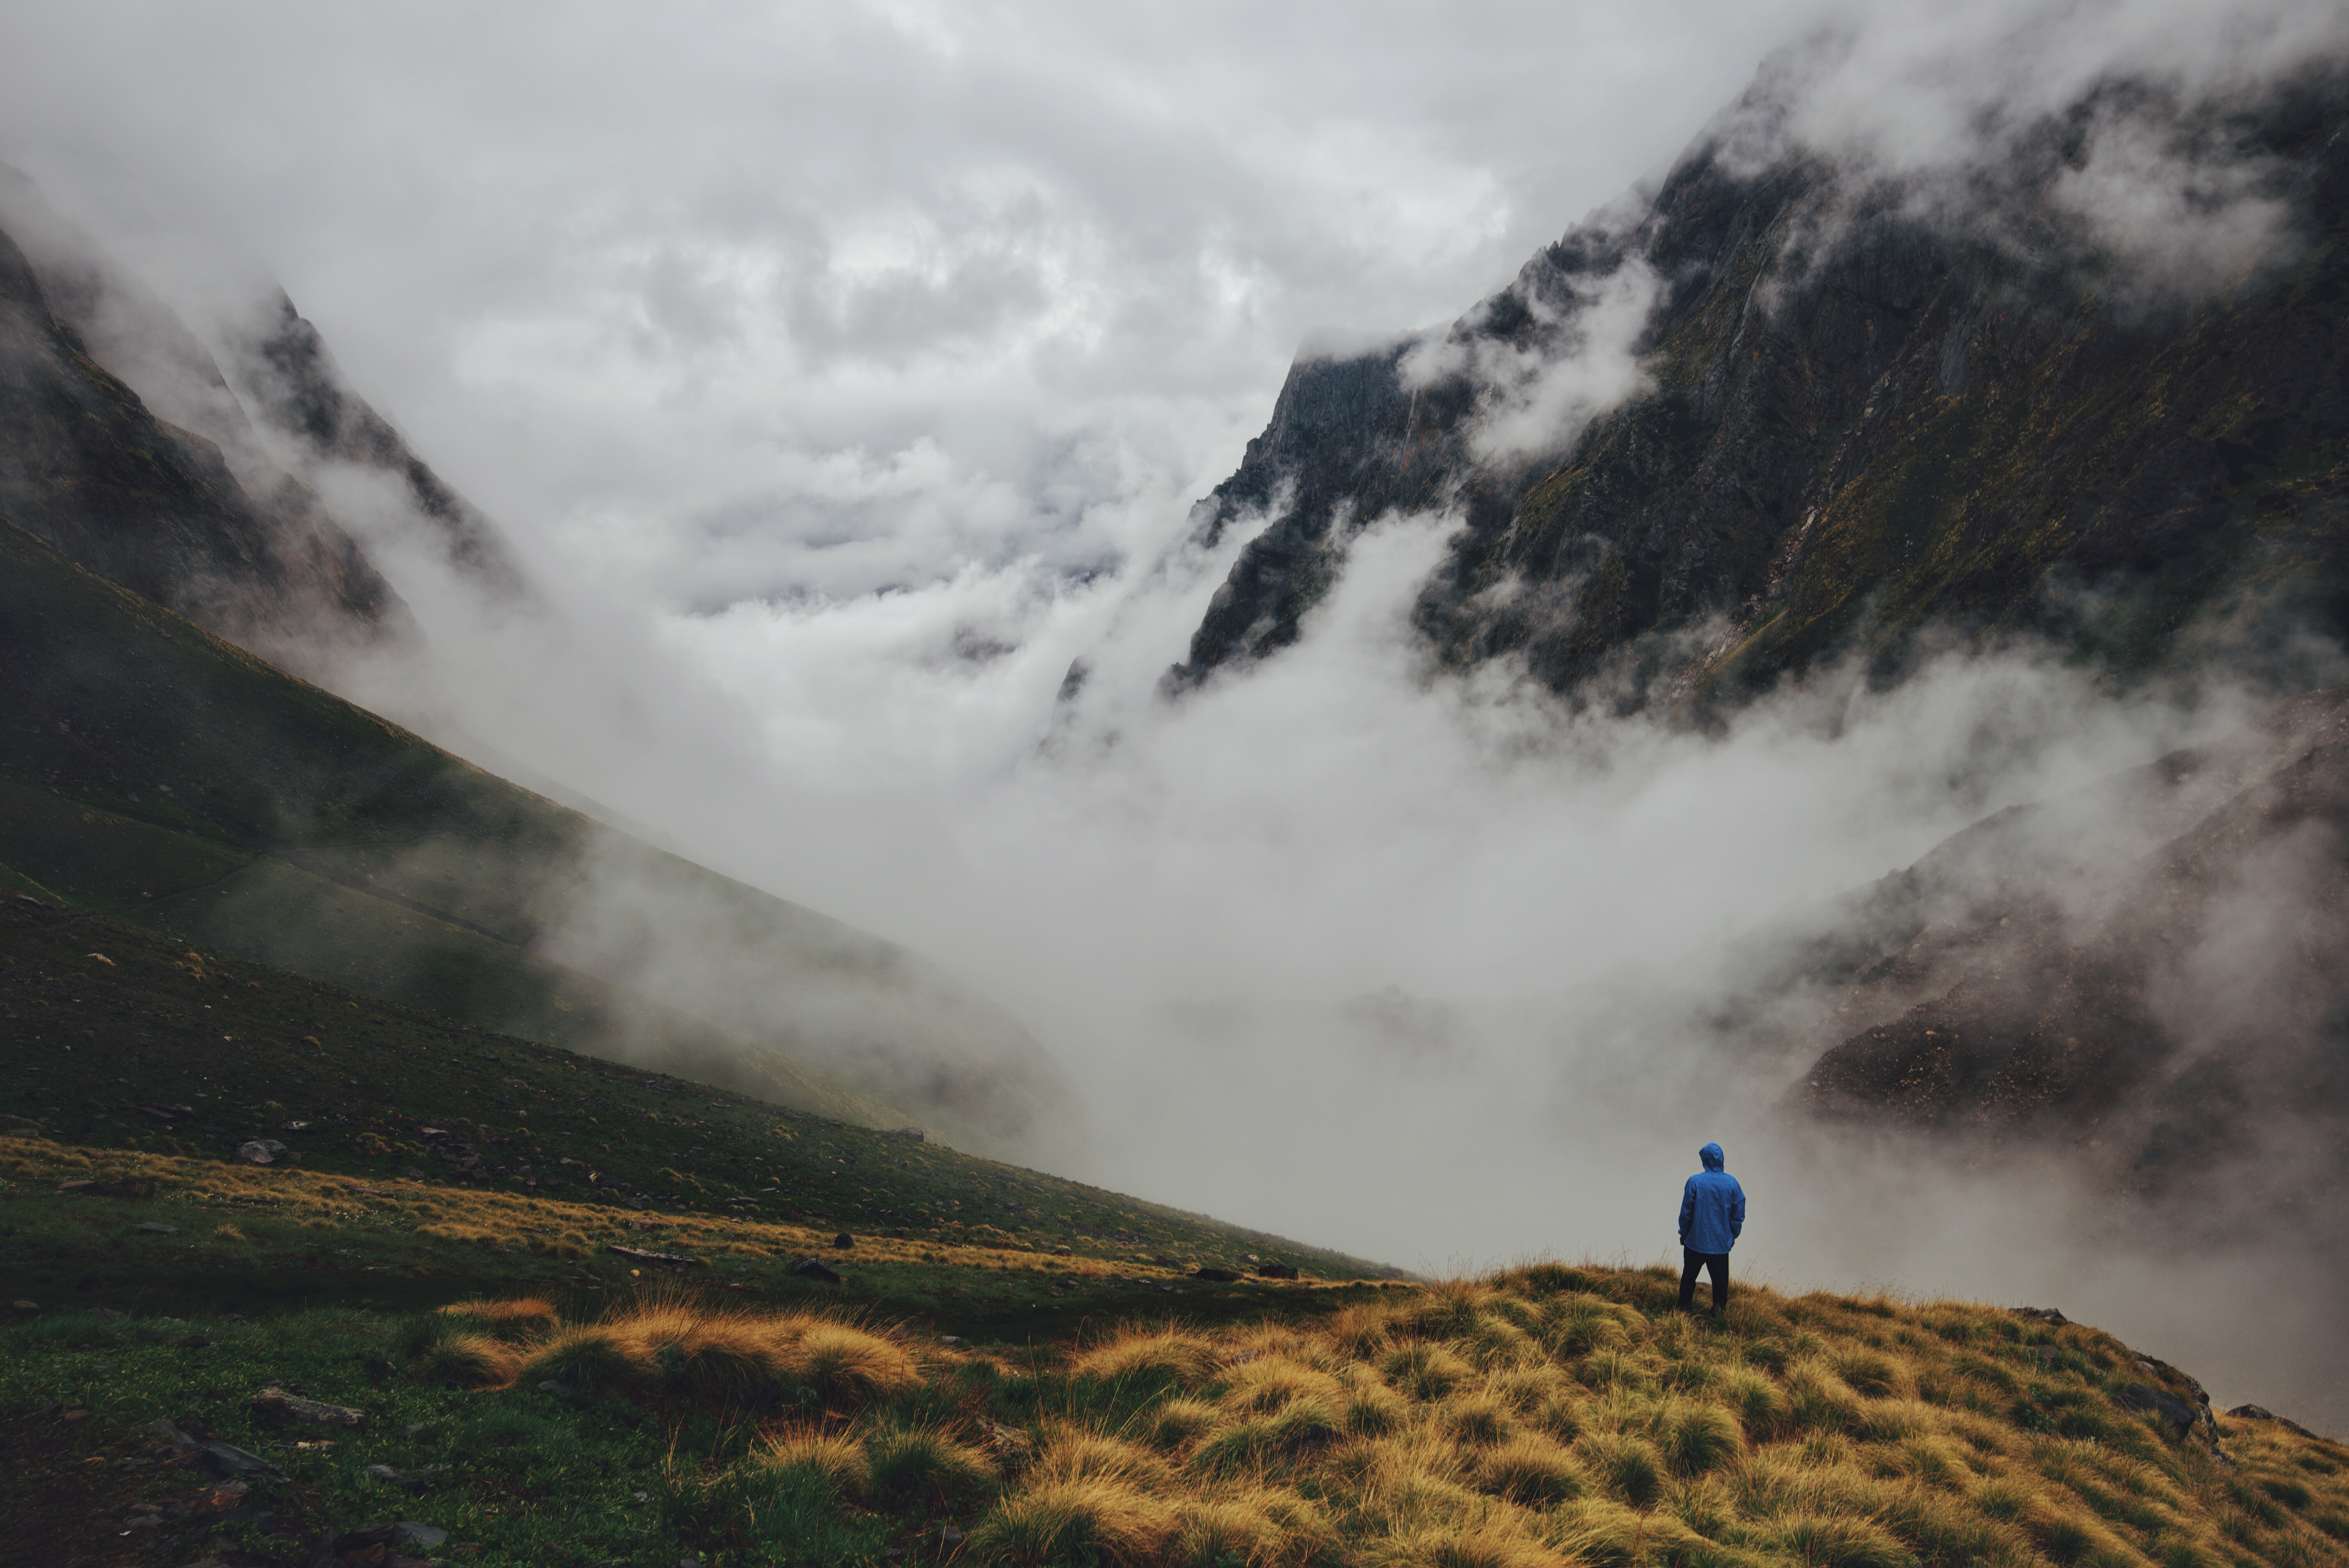 aerial photography of hooded man standing at mountain cliff facing cloudy mountains